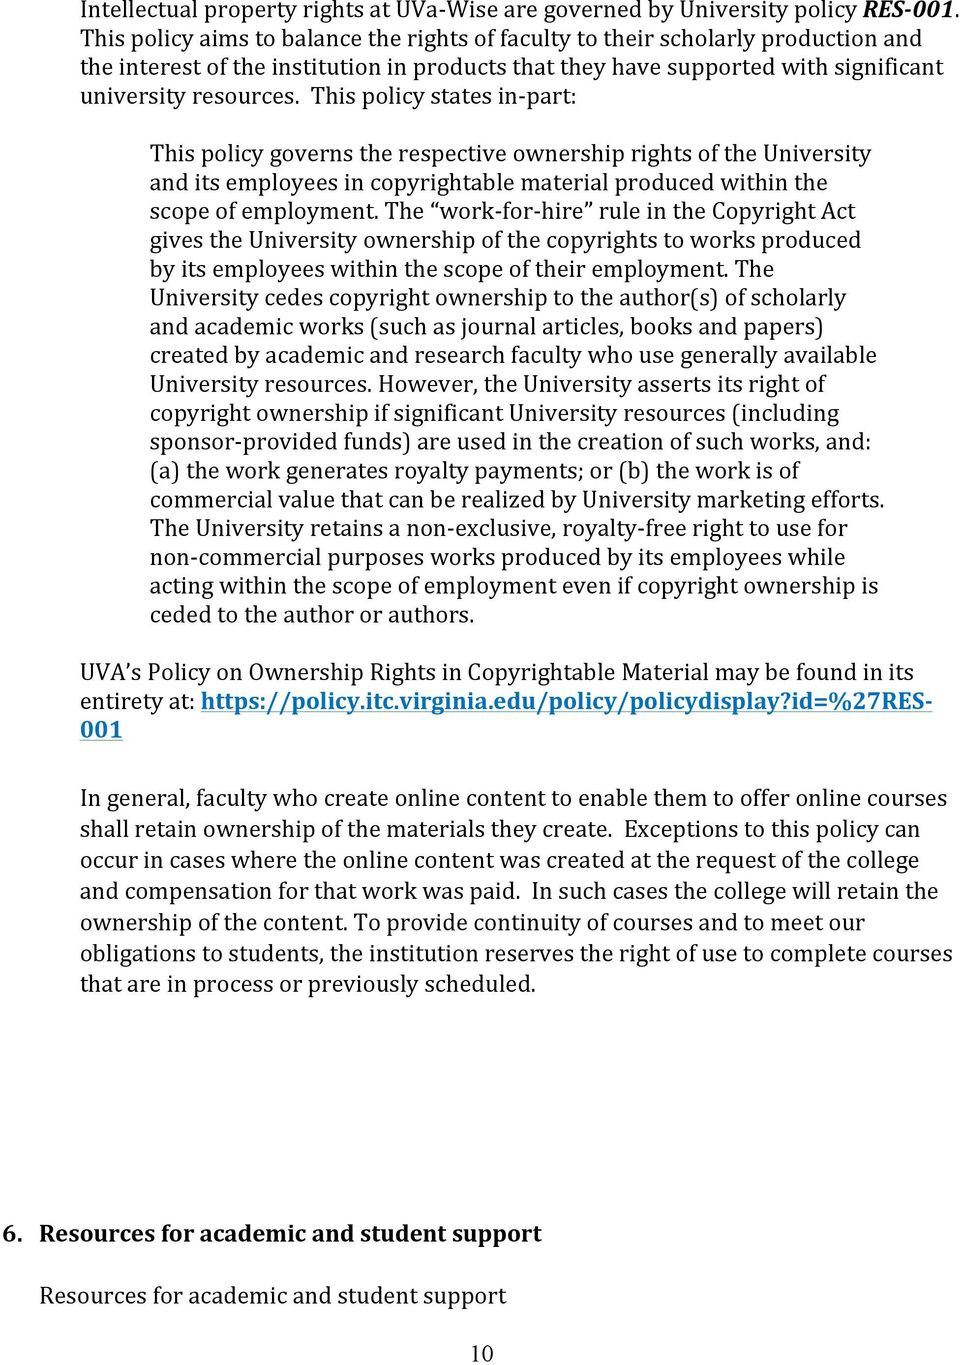 This policy states in- part: This policy governs the respective ownership rights of the University and its employees in copyrightable material produced within the scope of employment.